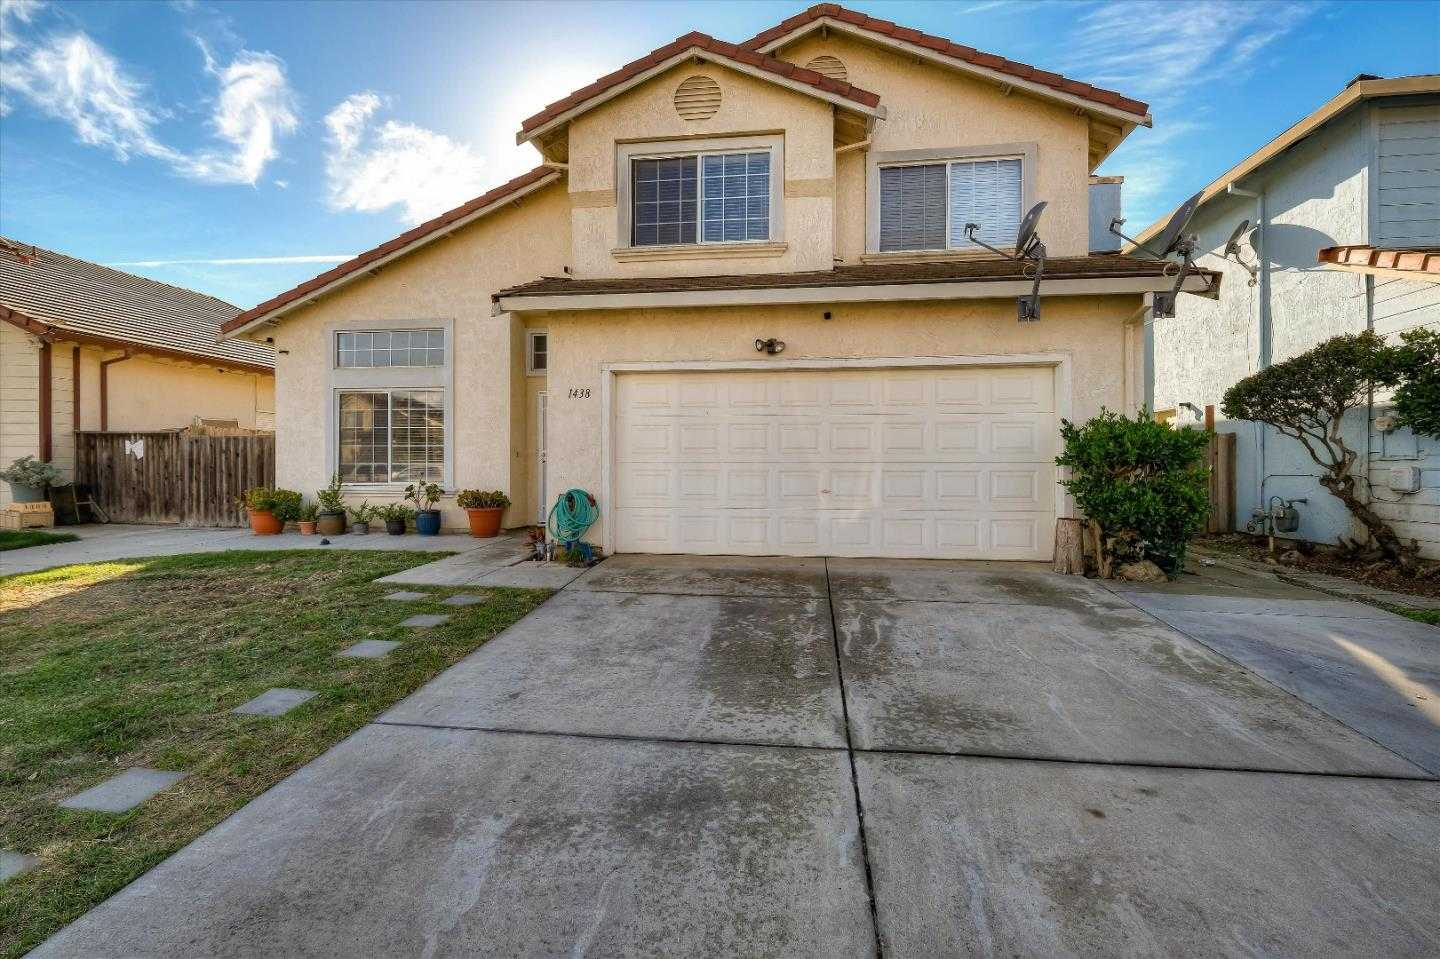 $528,888 - 4Br/3Ba -  for Sale in Salinas